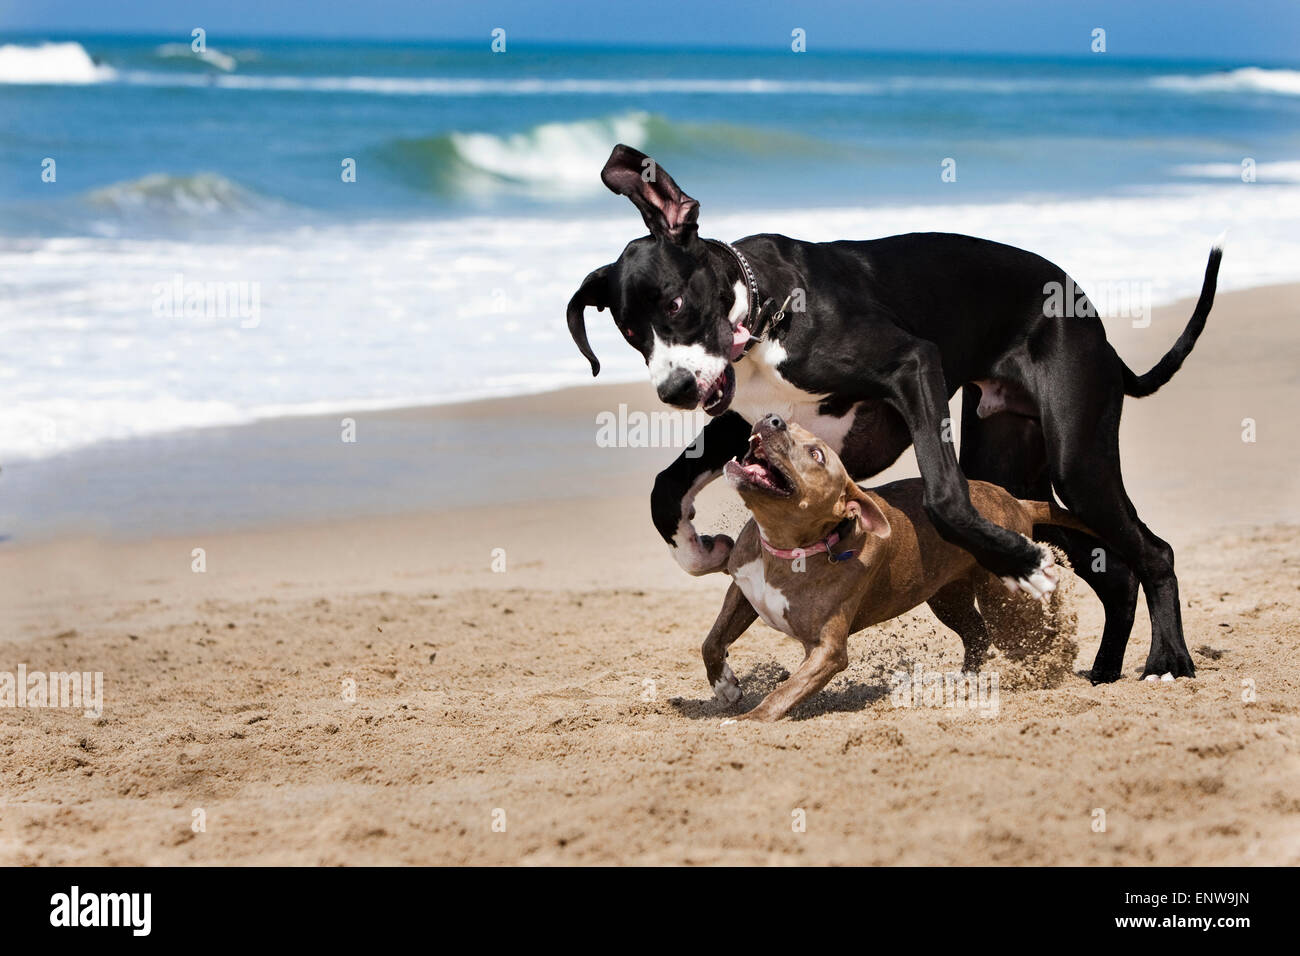 Black and White Great Dane dog and smaller Pitbull running and playing hard in sand on beach with ocean and waves - Stock Image